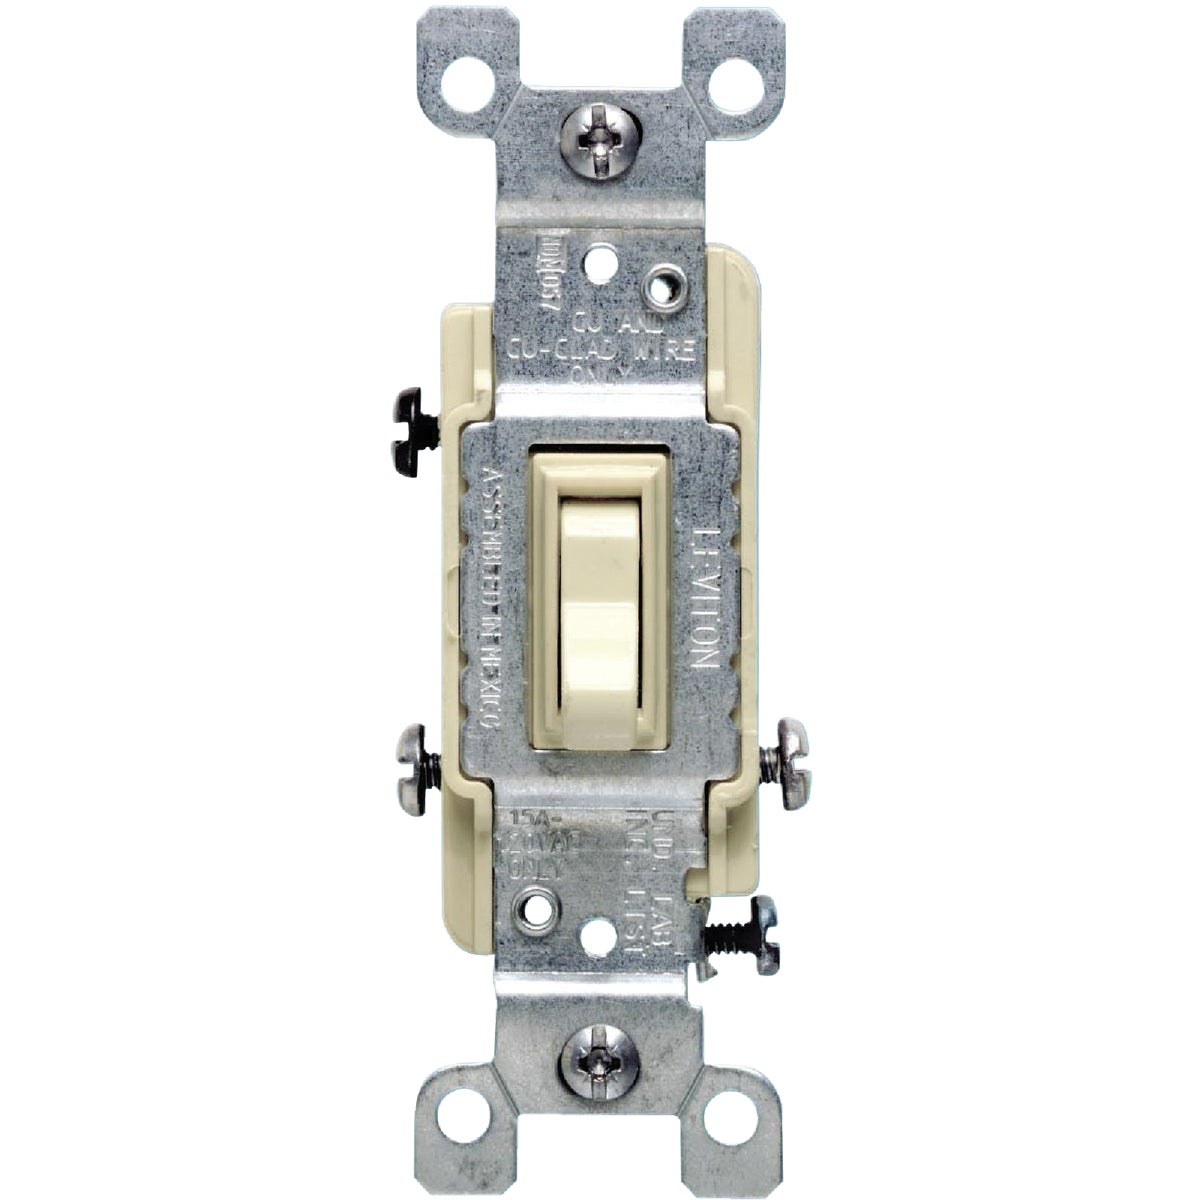 3-WAY GRND SWITCH